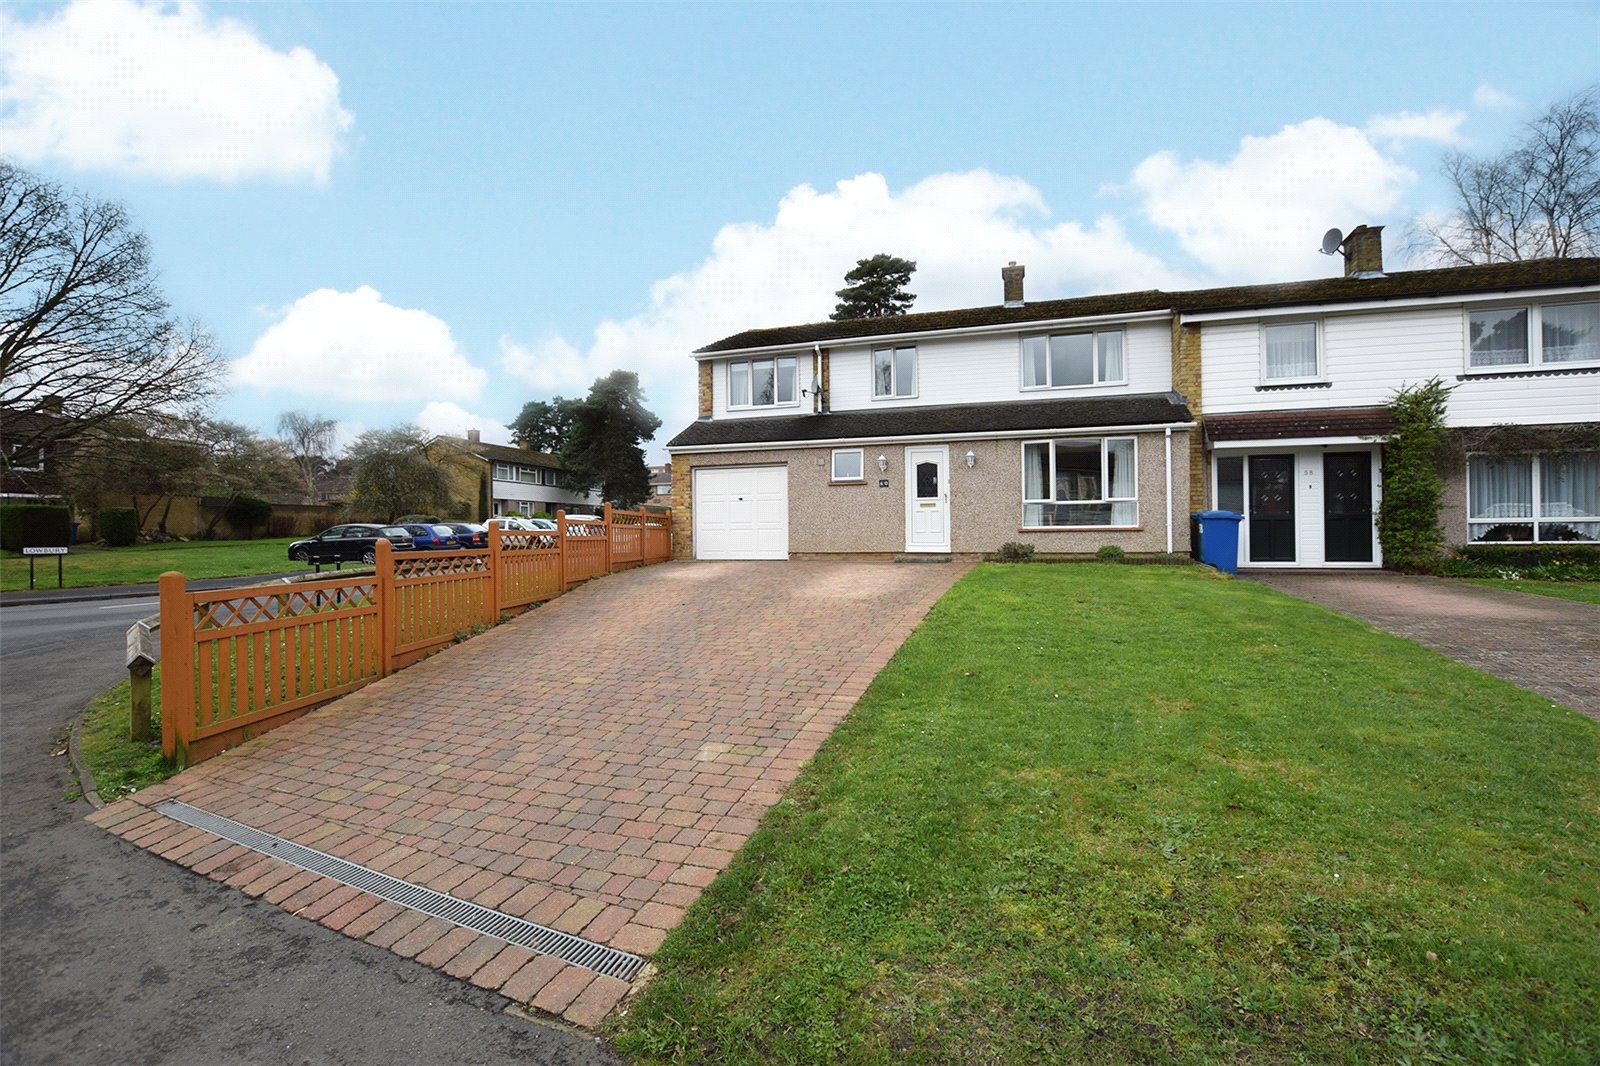 4 Bedrooms End Of Terrace House for sale in Uffington Drive, Bracknell, Berkshire, RG12